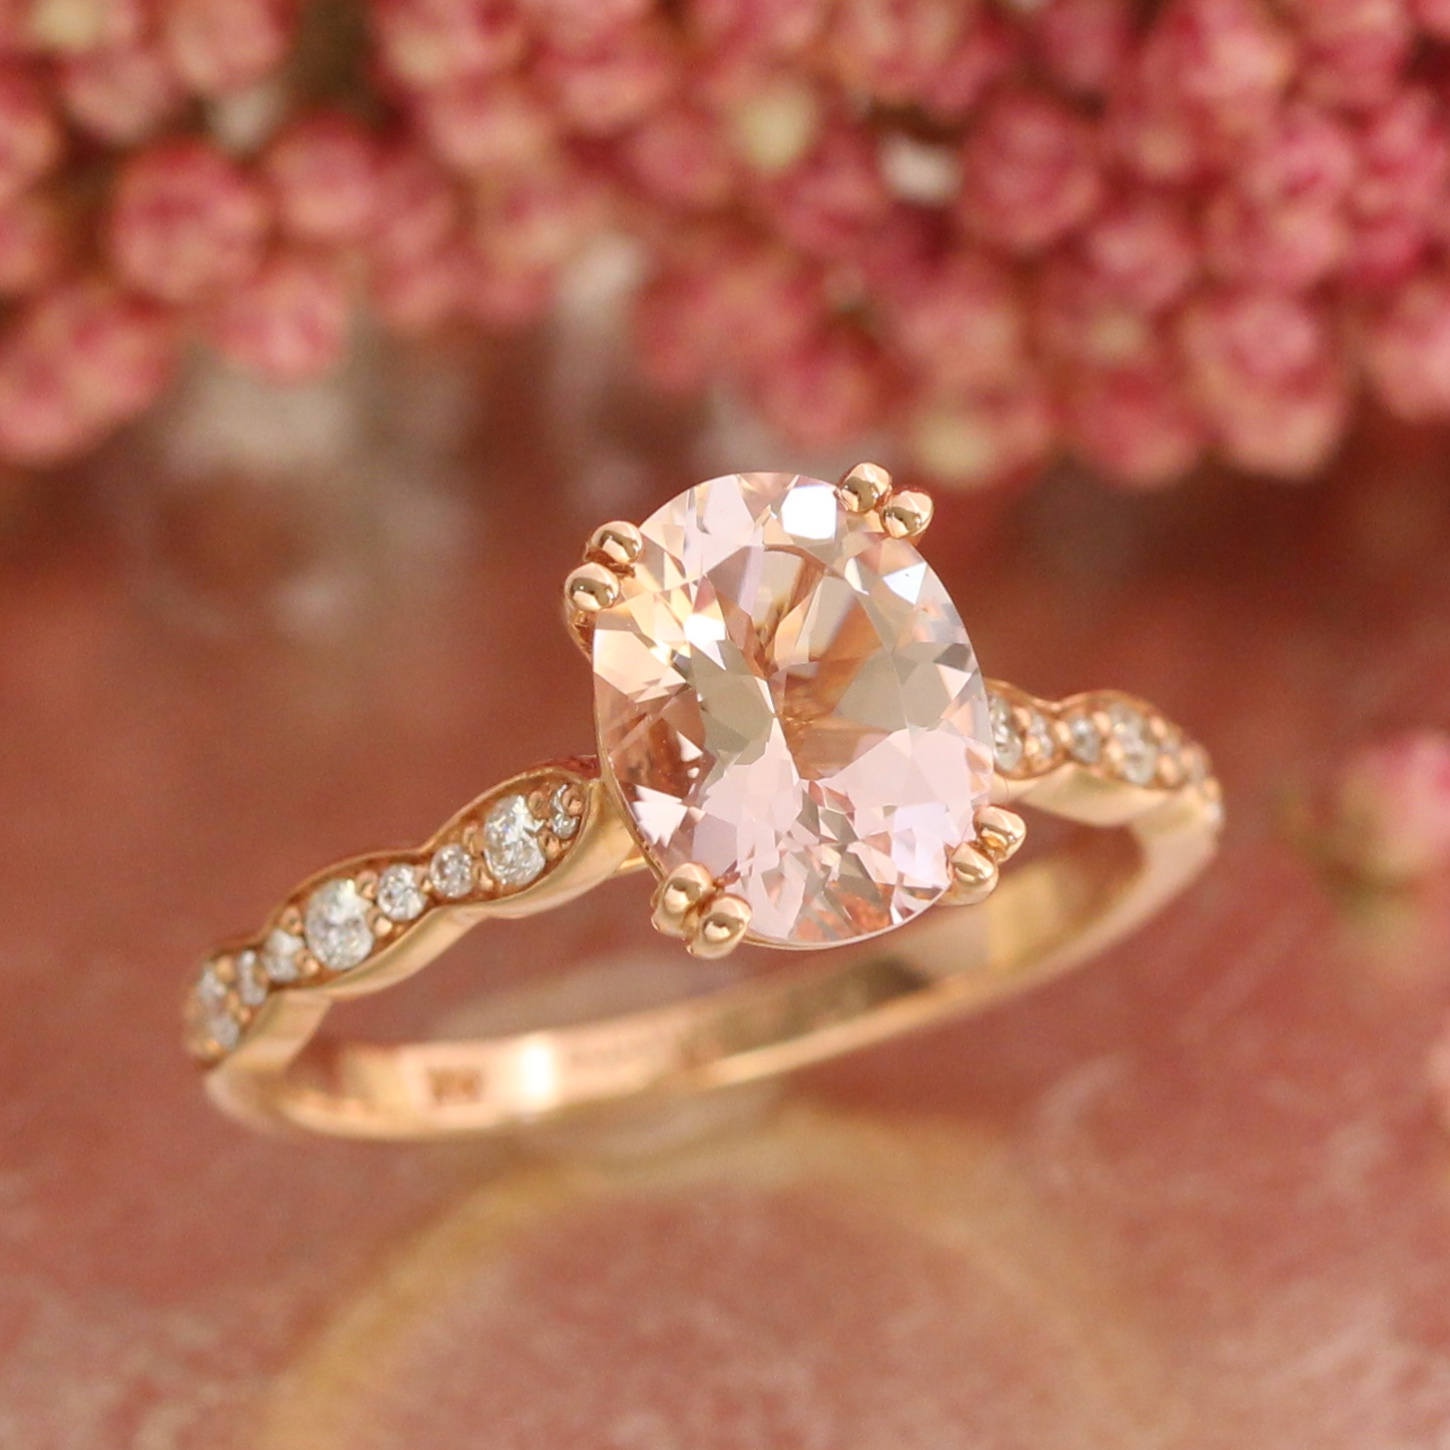 1.4ct Oval Cut Peach Morganite Solitaire Engagement Ring 14k pink gold Finish